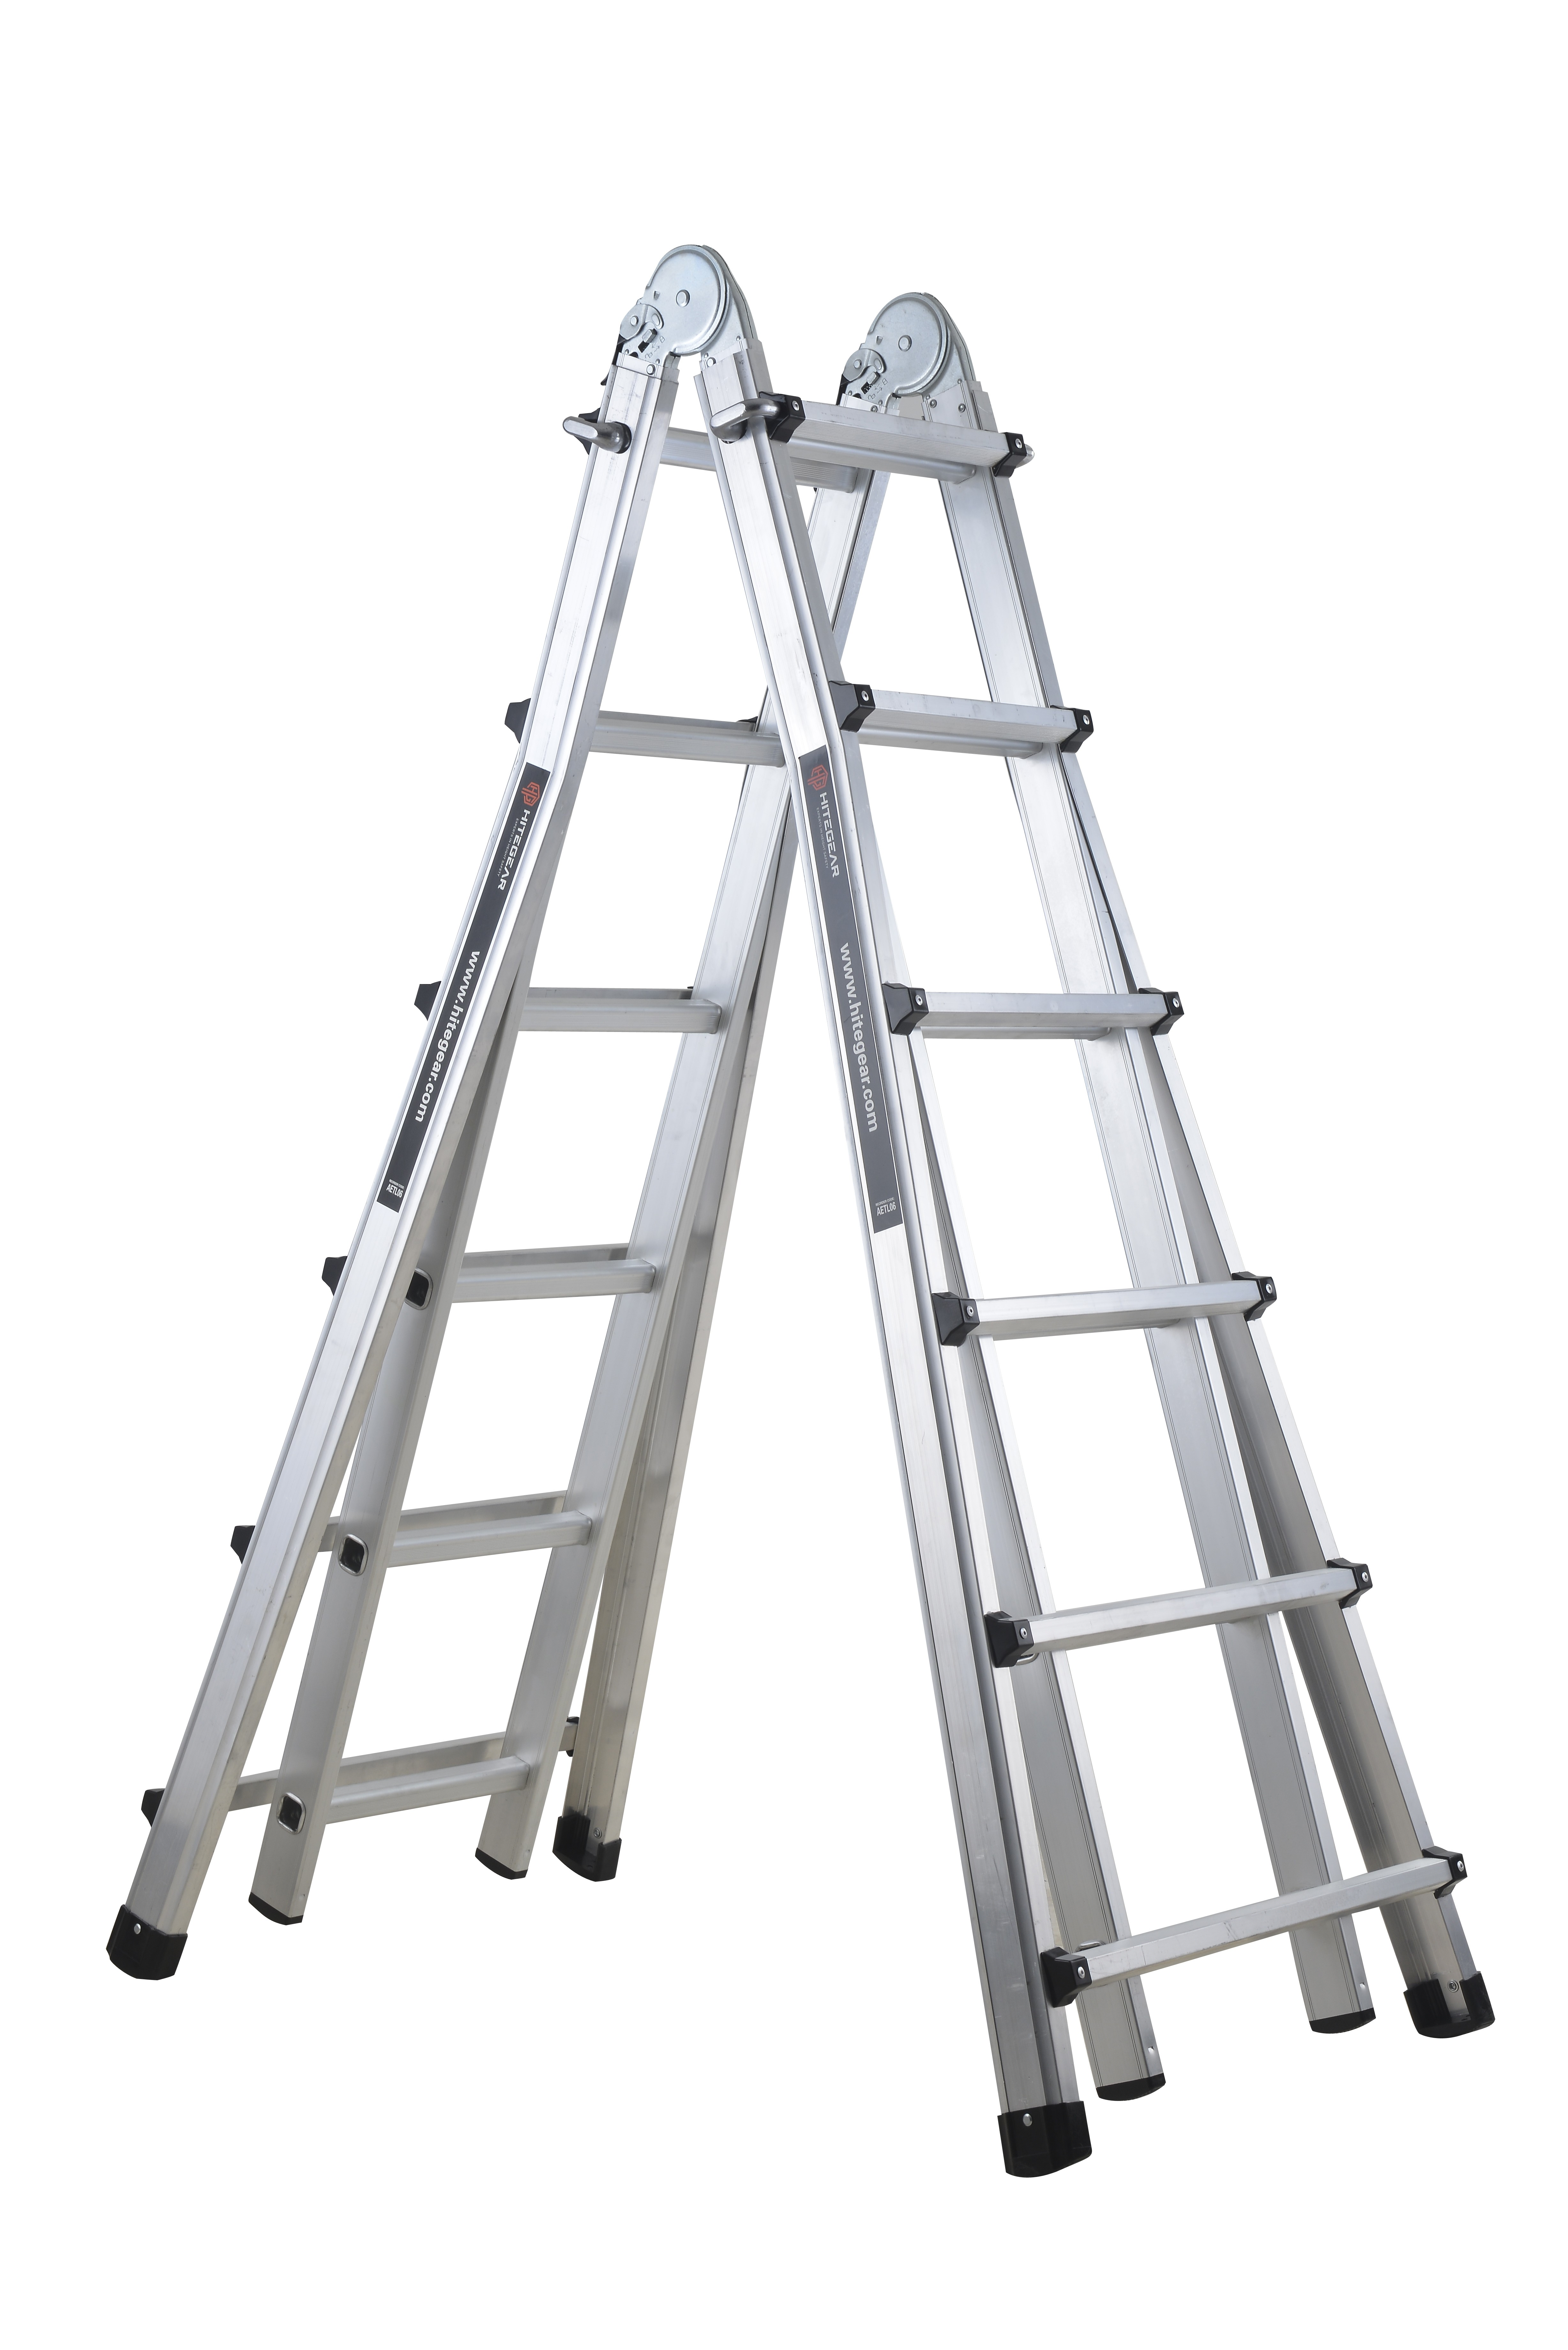 Hitegear - Experts in Height Safety - 4 X 6 Rung Telescopic Ladder